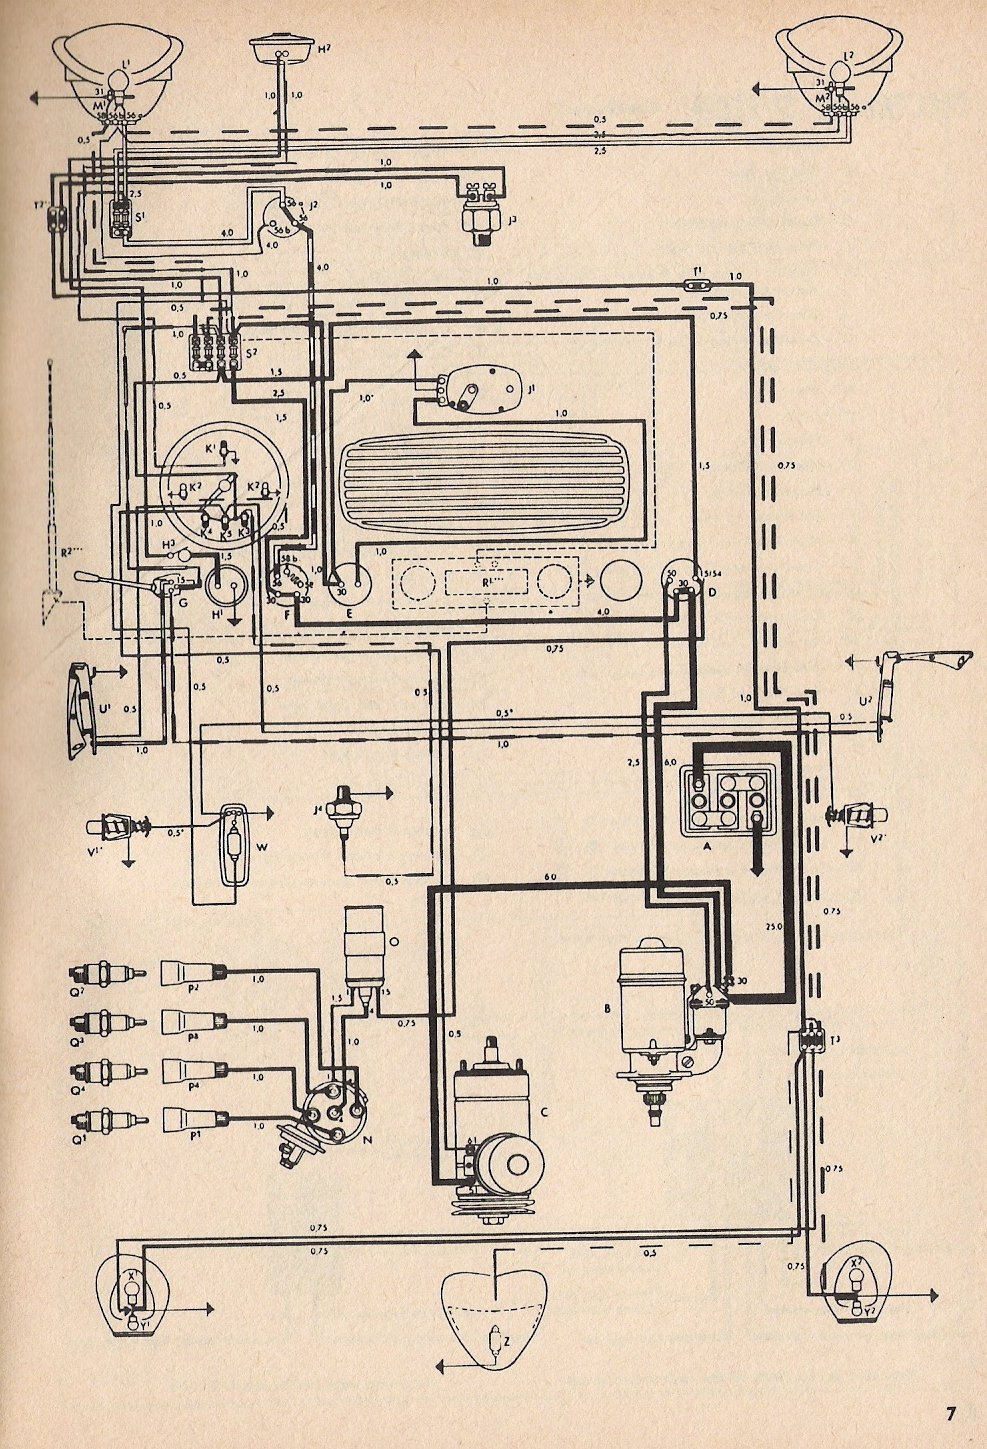 Volkswagen wiring diagram free engine image for